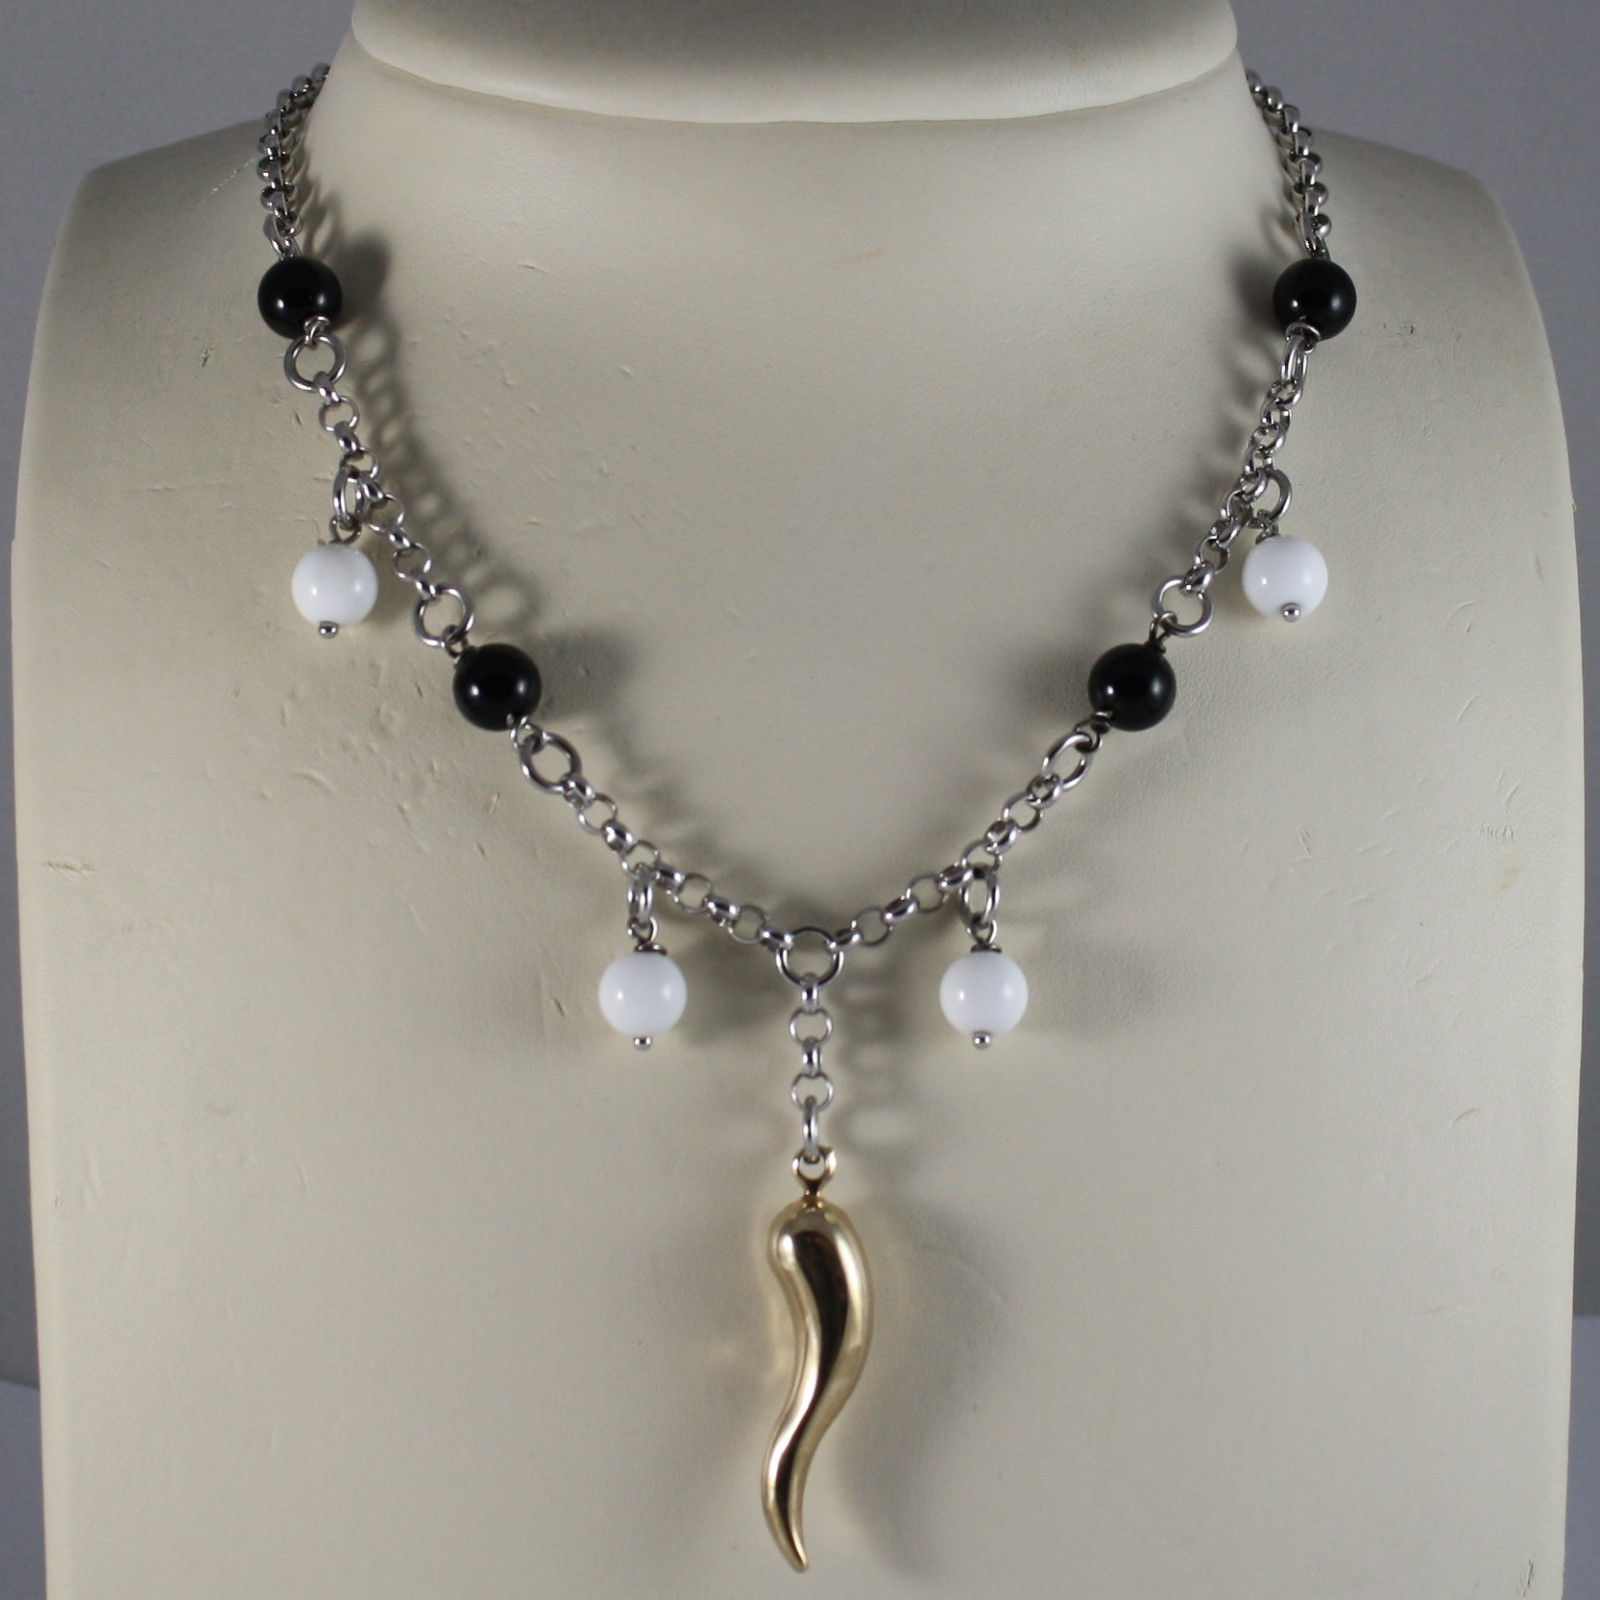 .925 SILVER RHODIUM NECKLACE WITH BLACK ONYX, WHITE AGATE AND GOLDEN HORN